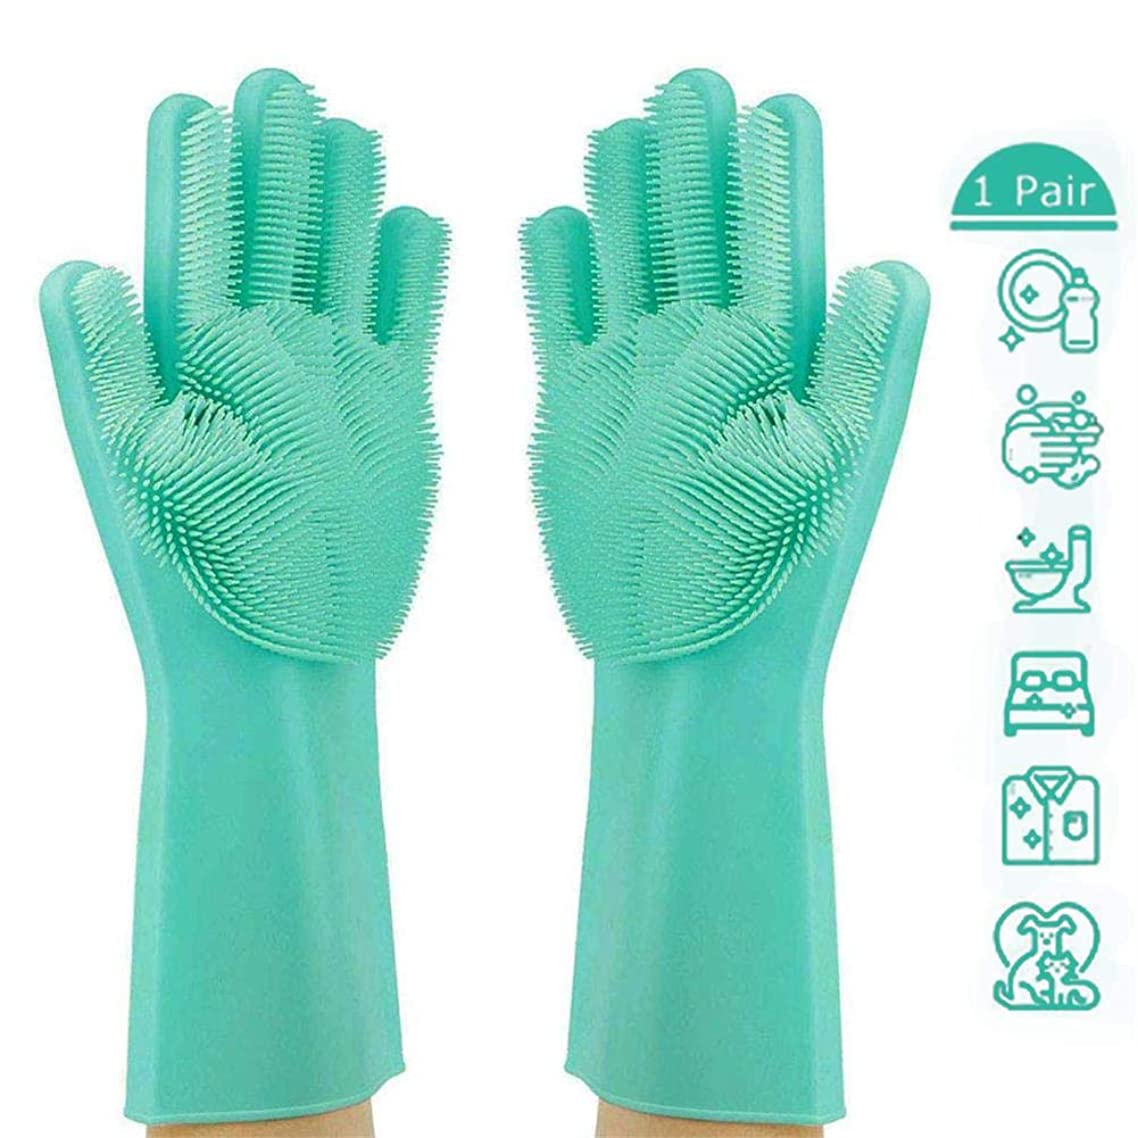 Magic Silicone Dishwashing Gloves,Reusable Silicone Brush Scrubber Gloves with Long Bristles,Heat Resistant Great for Cleaning Dishwashing,Kitchen and Bathroom(Upgraded Green)